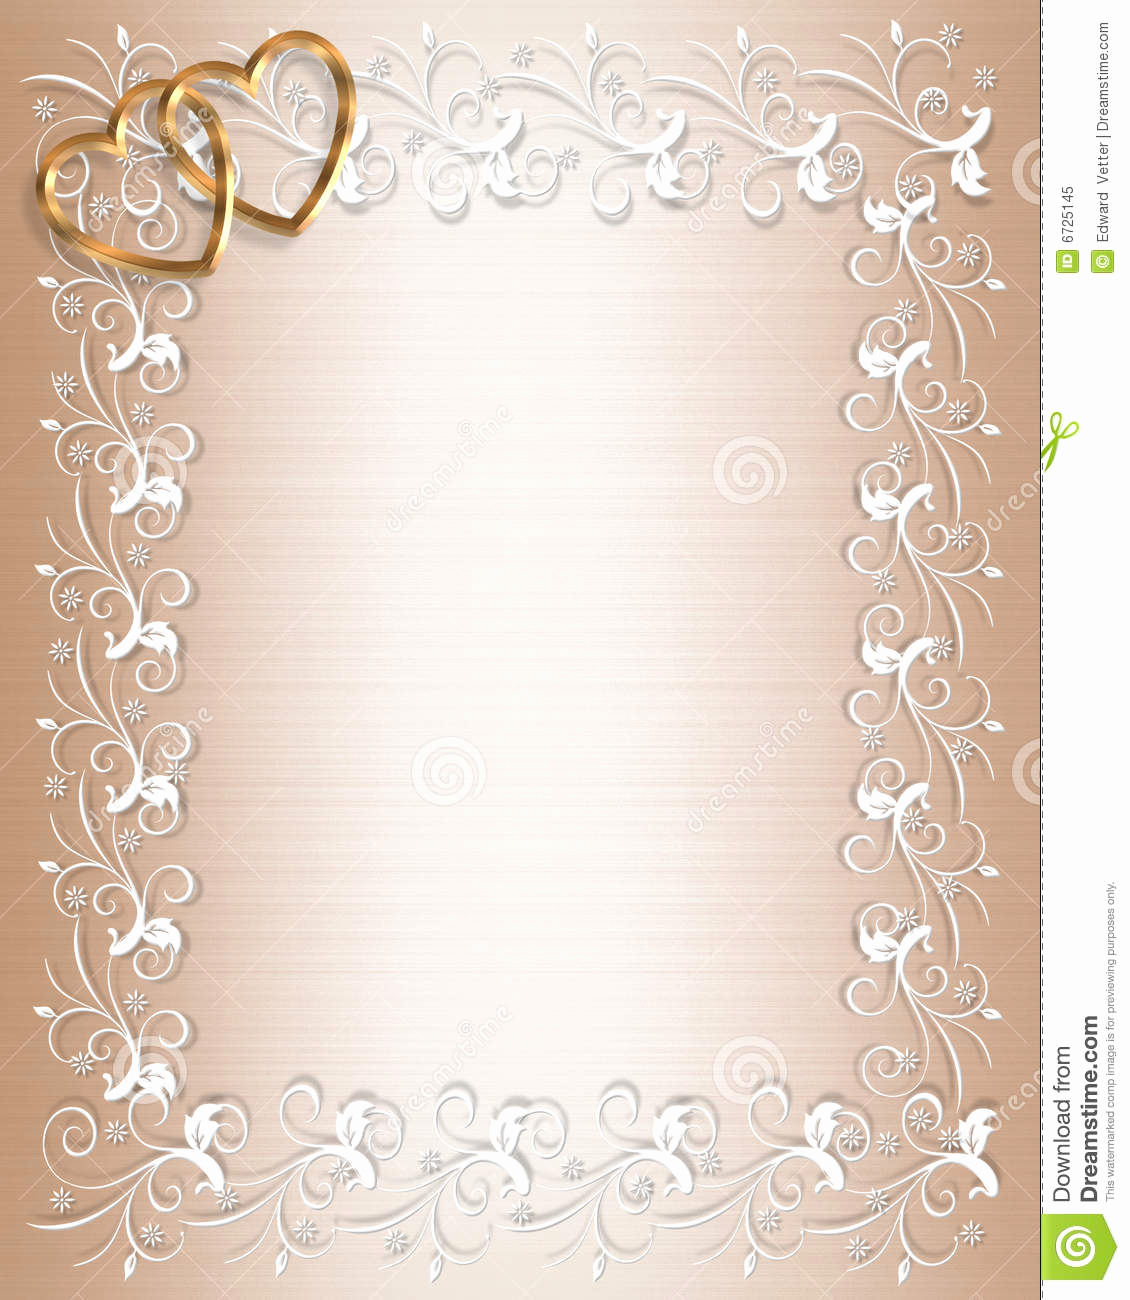 Wedding Invitation Borders Design Luxury Free Background Borders to Clipground